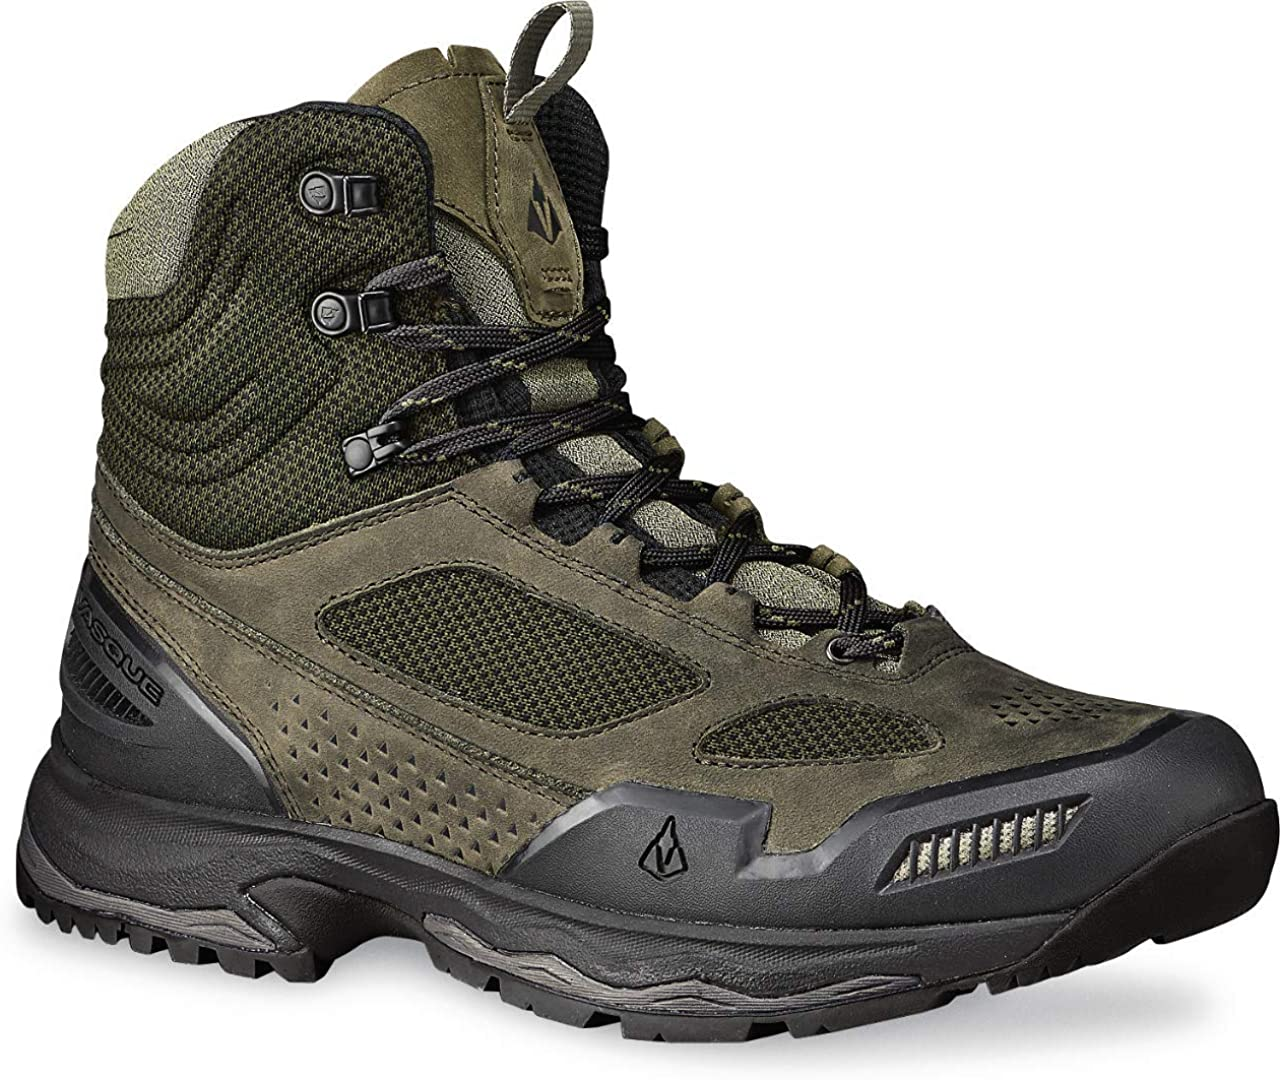 Vasque Men's Breeze at Hiking Boot